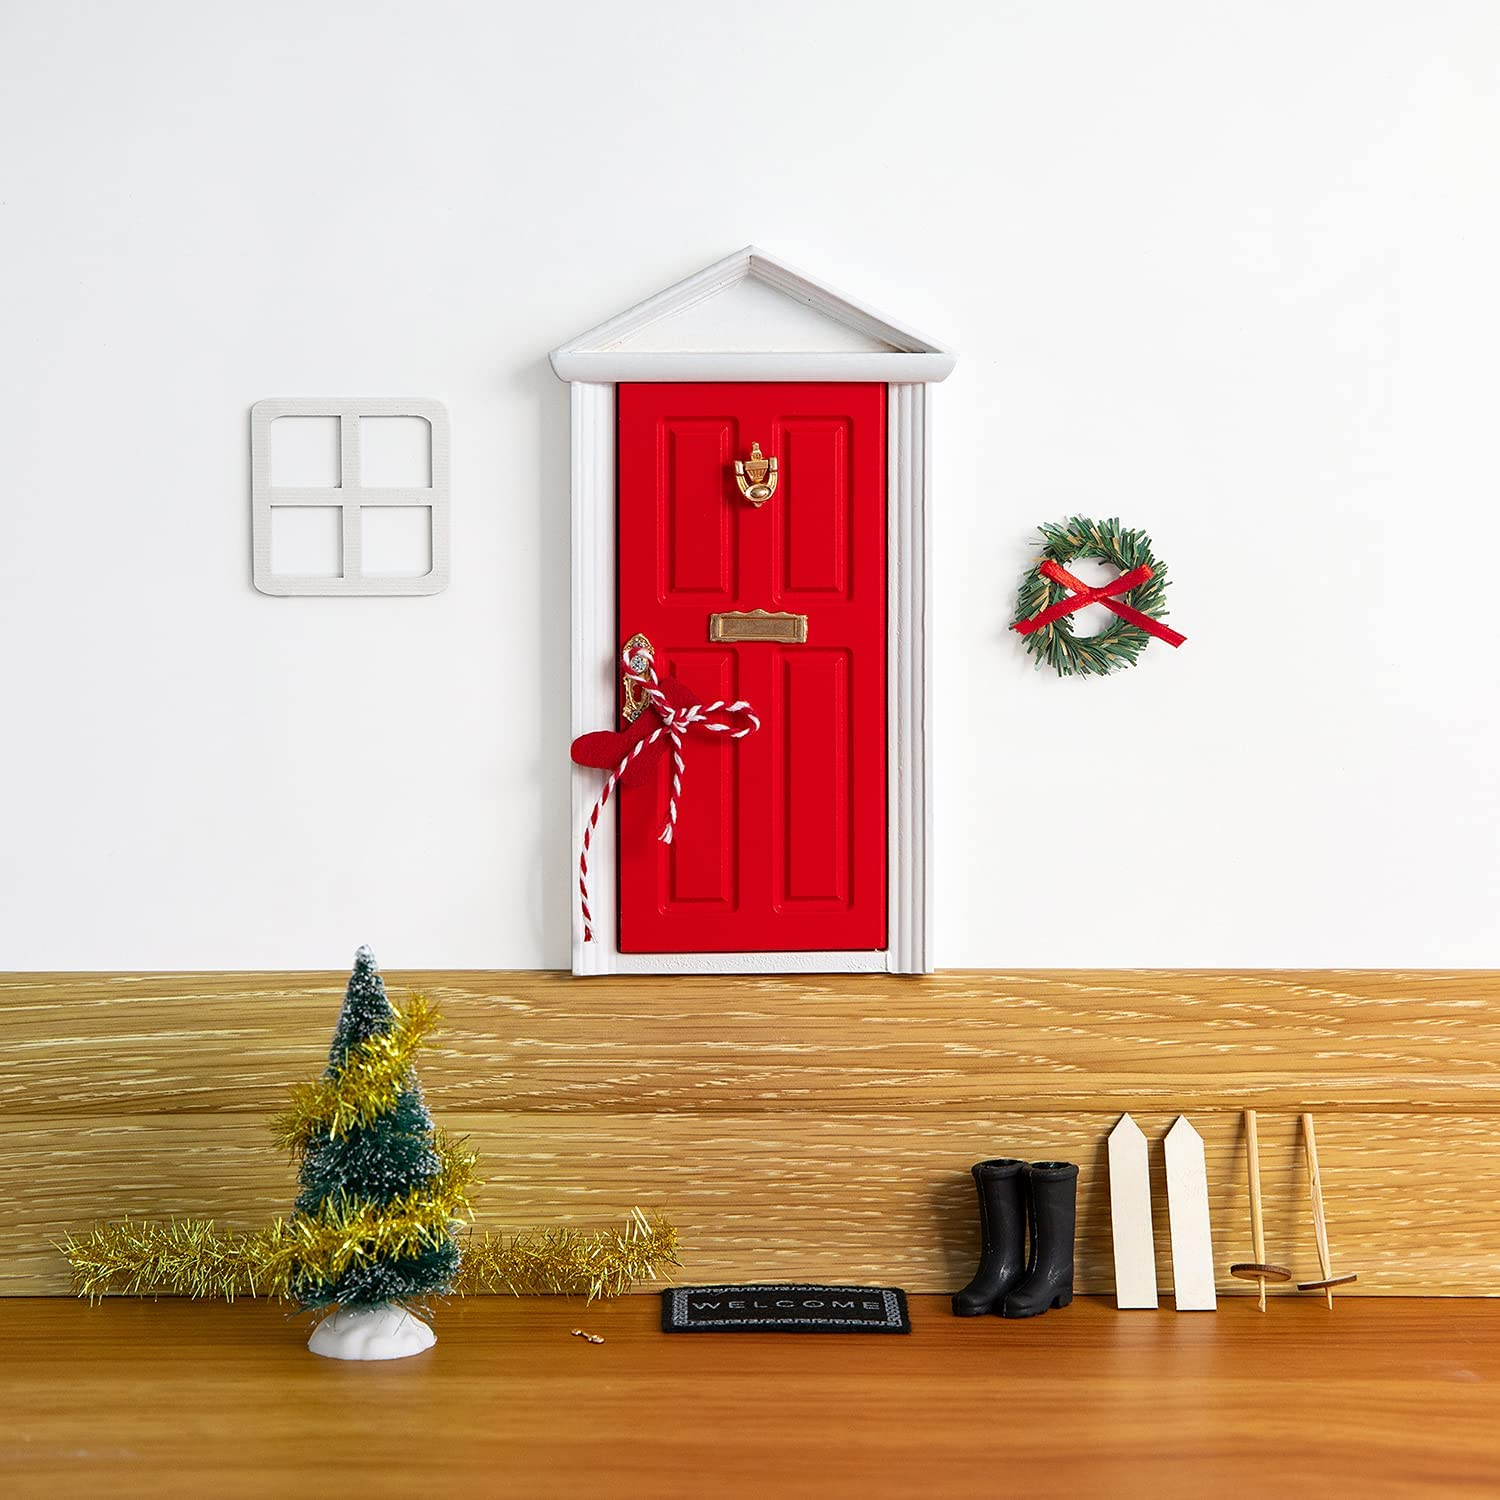 Tonttuovi Special Entry Raleigh Mall for Fairies and Elf Magical Elves f Door Online limited product